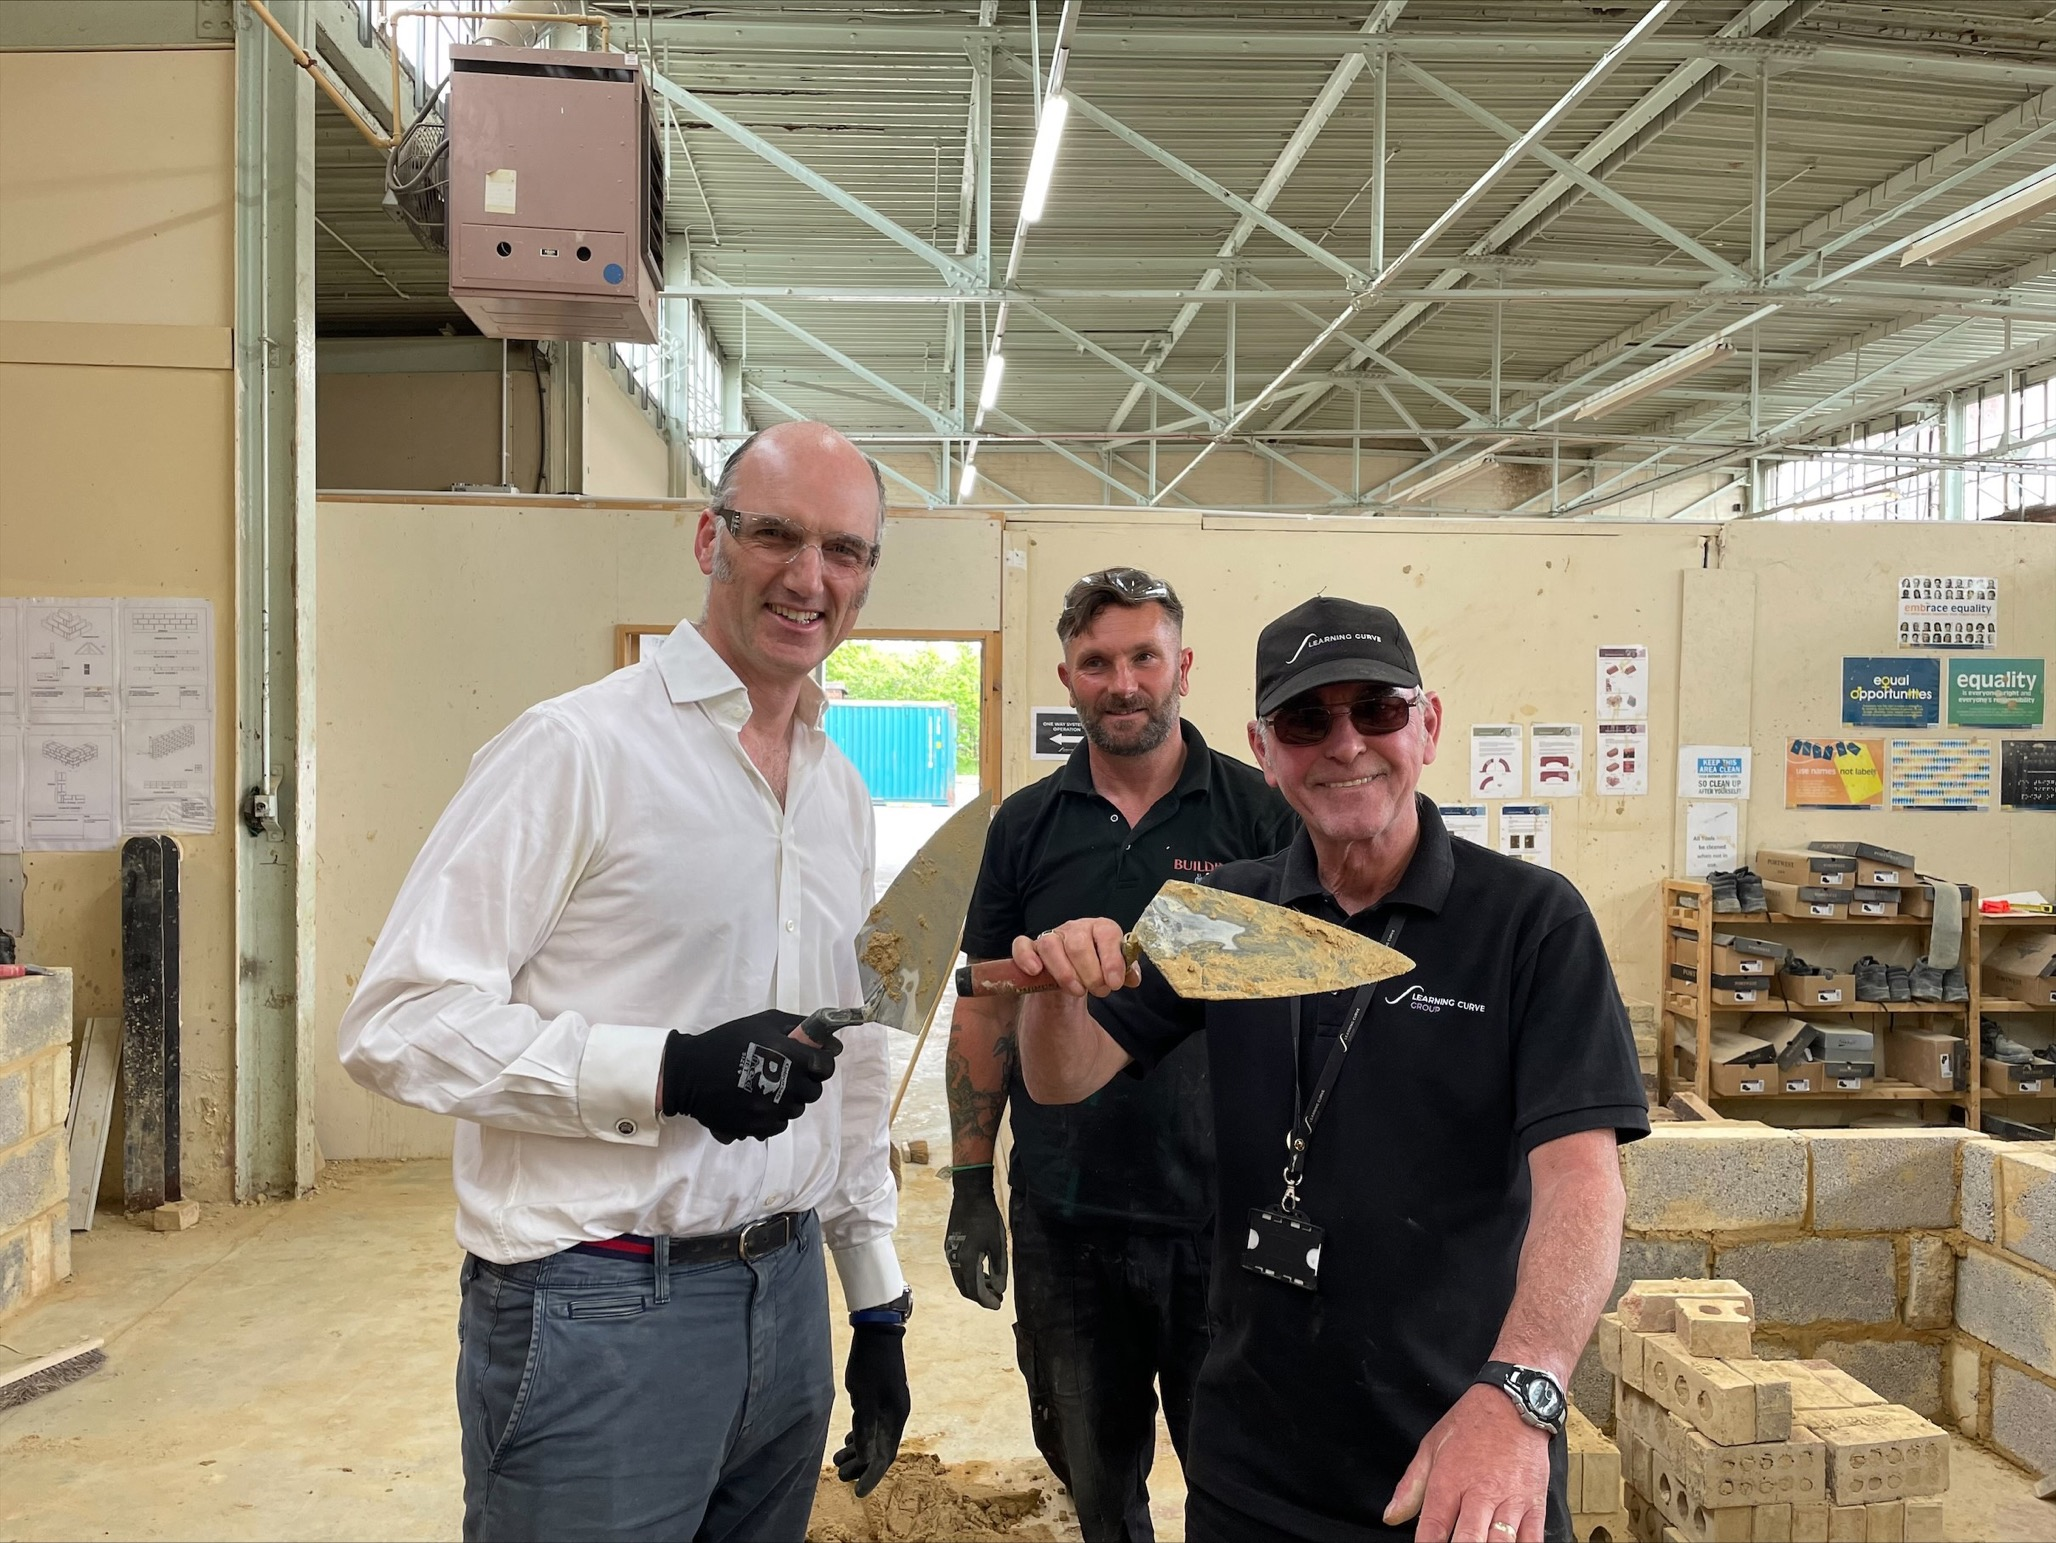 MP LEO DOCHERTY VISITS LCG CONSTRUCTION ACADEMY.png